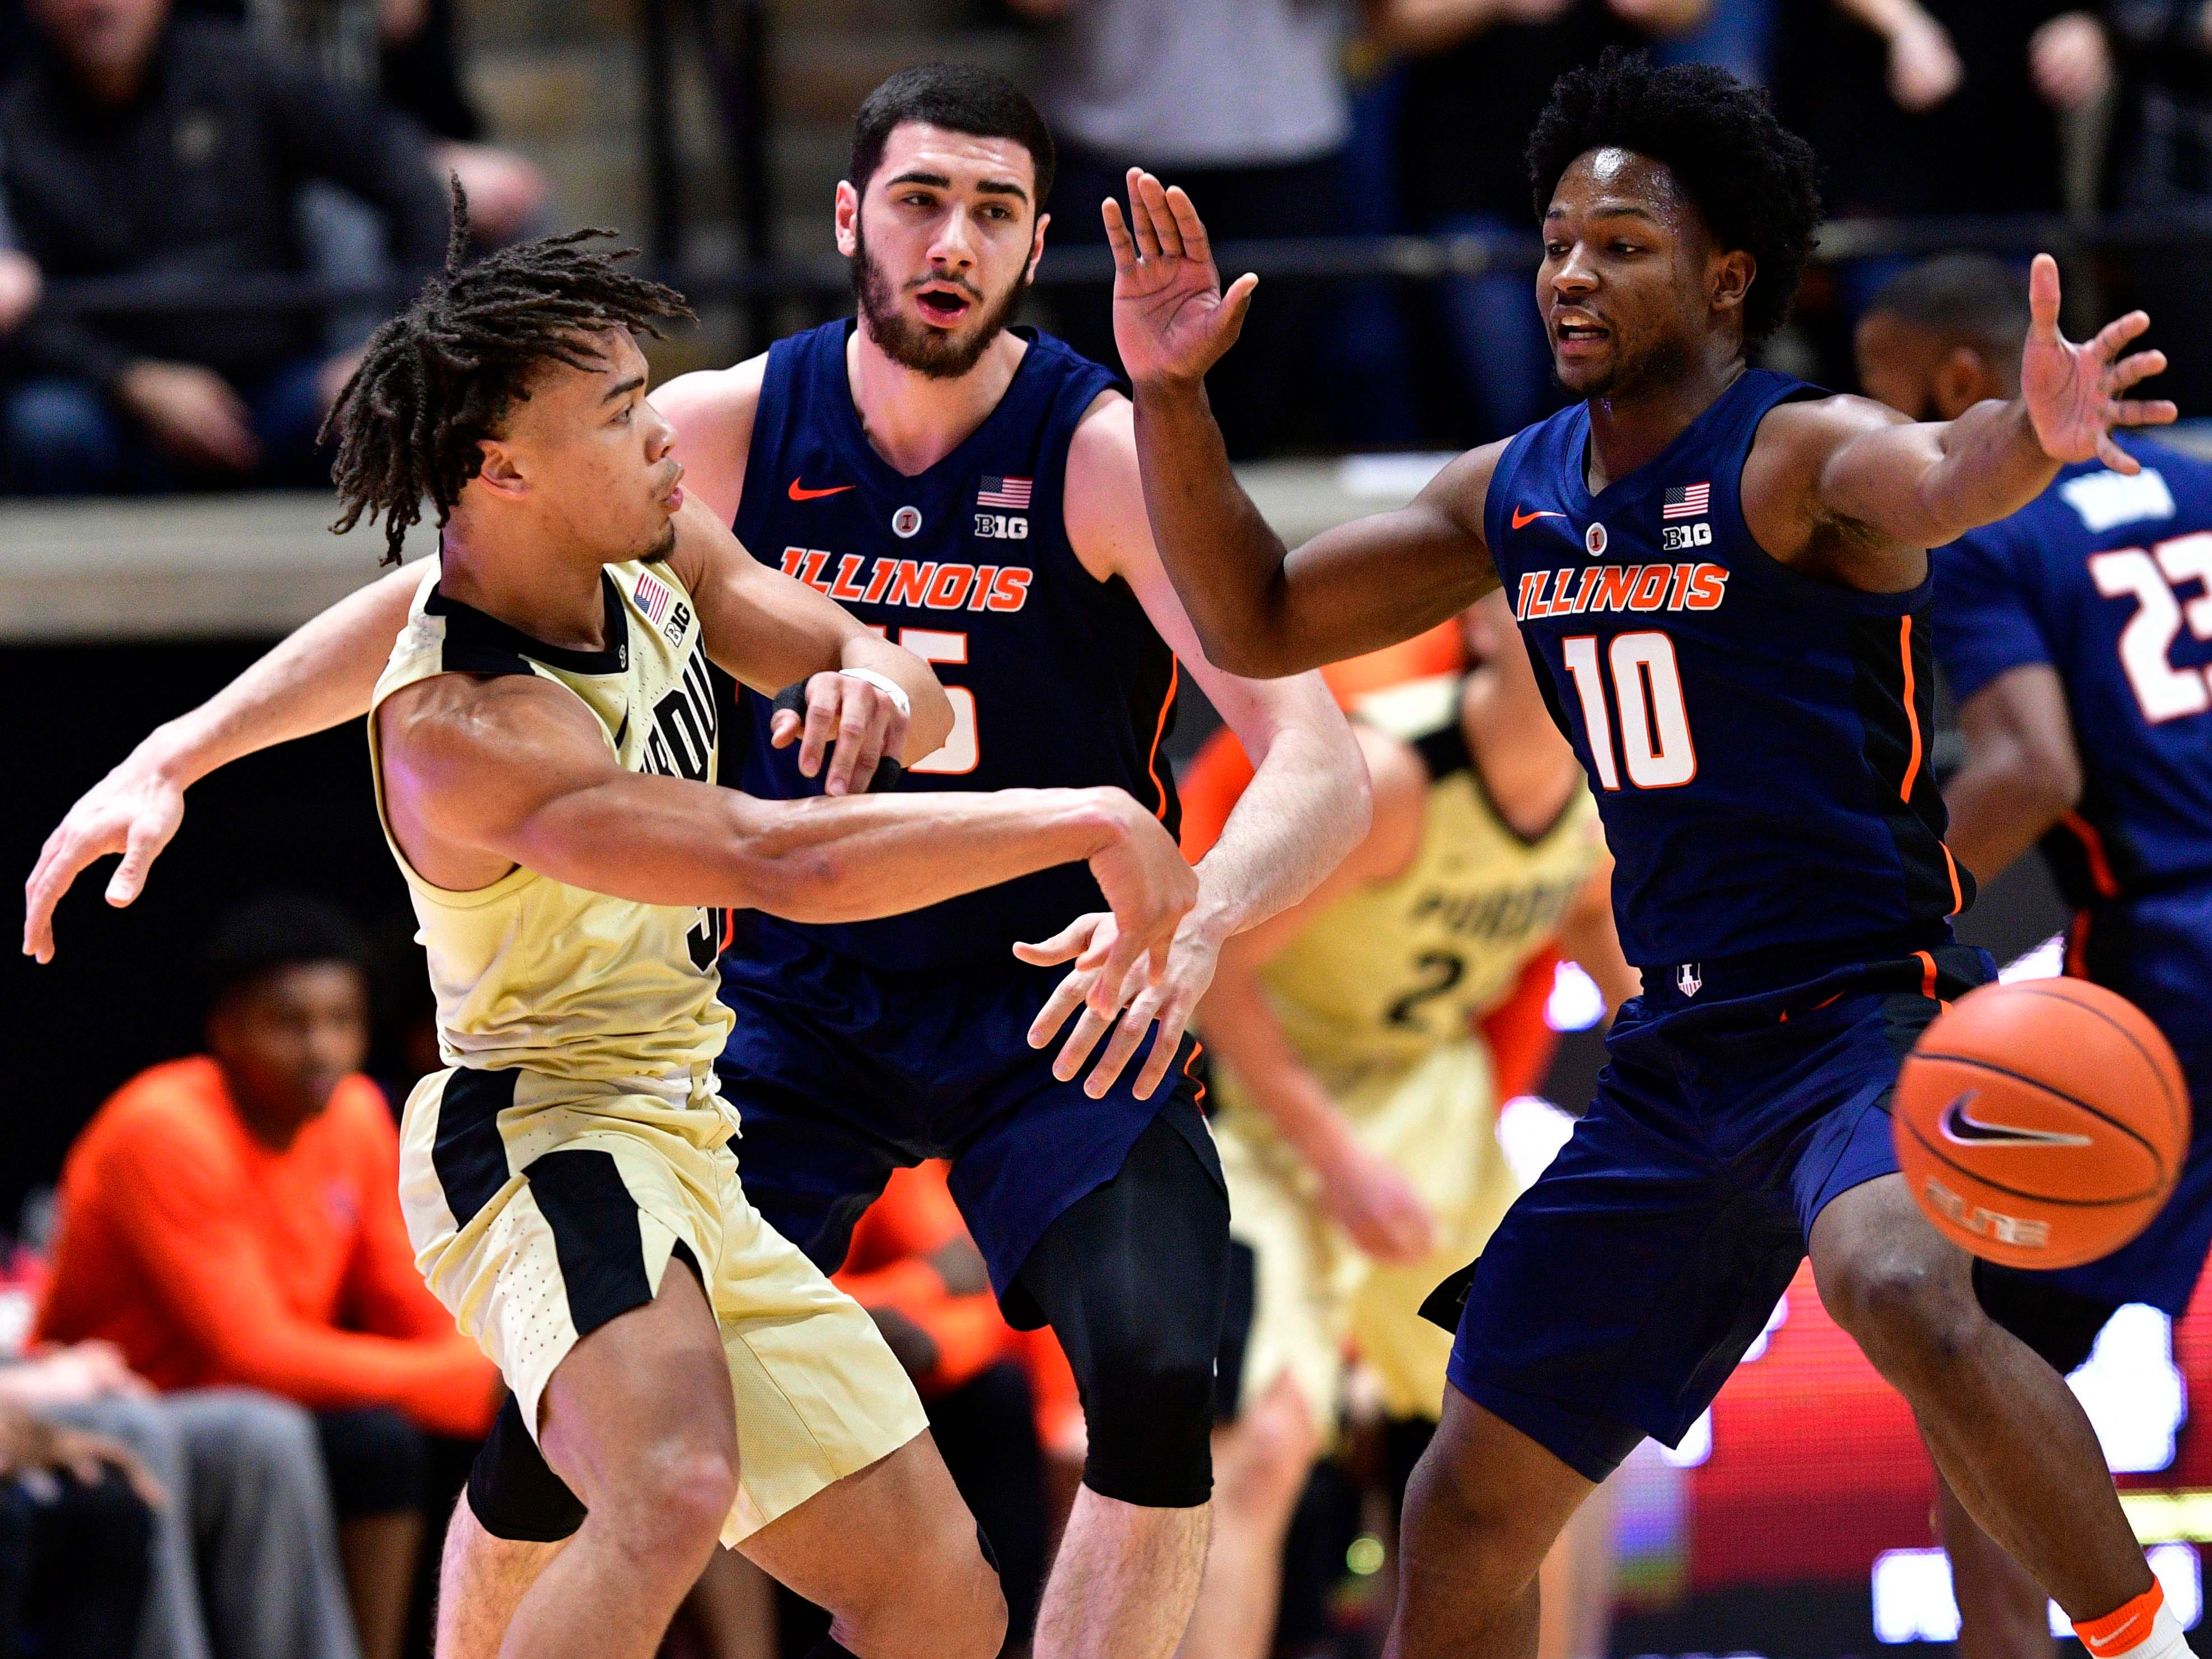 Feb 27, 2019; West Lafayette, IN, USA; Purdue Boilermakers guard Carsen Edwards (3) passes the ball past Illinois Fighting Illini guard Andres Feliz (10) during the first half of the game at Mackey Arena. Mandatory Credit: Marc Lebryk-USA TODAY Sports